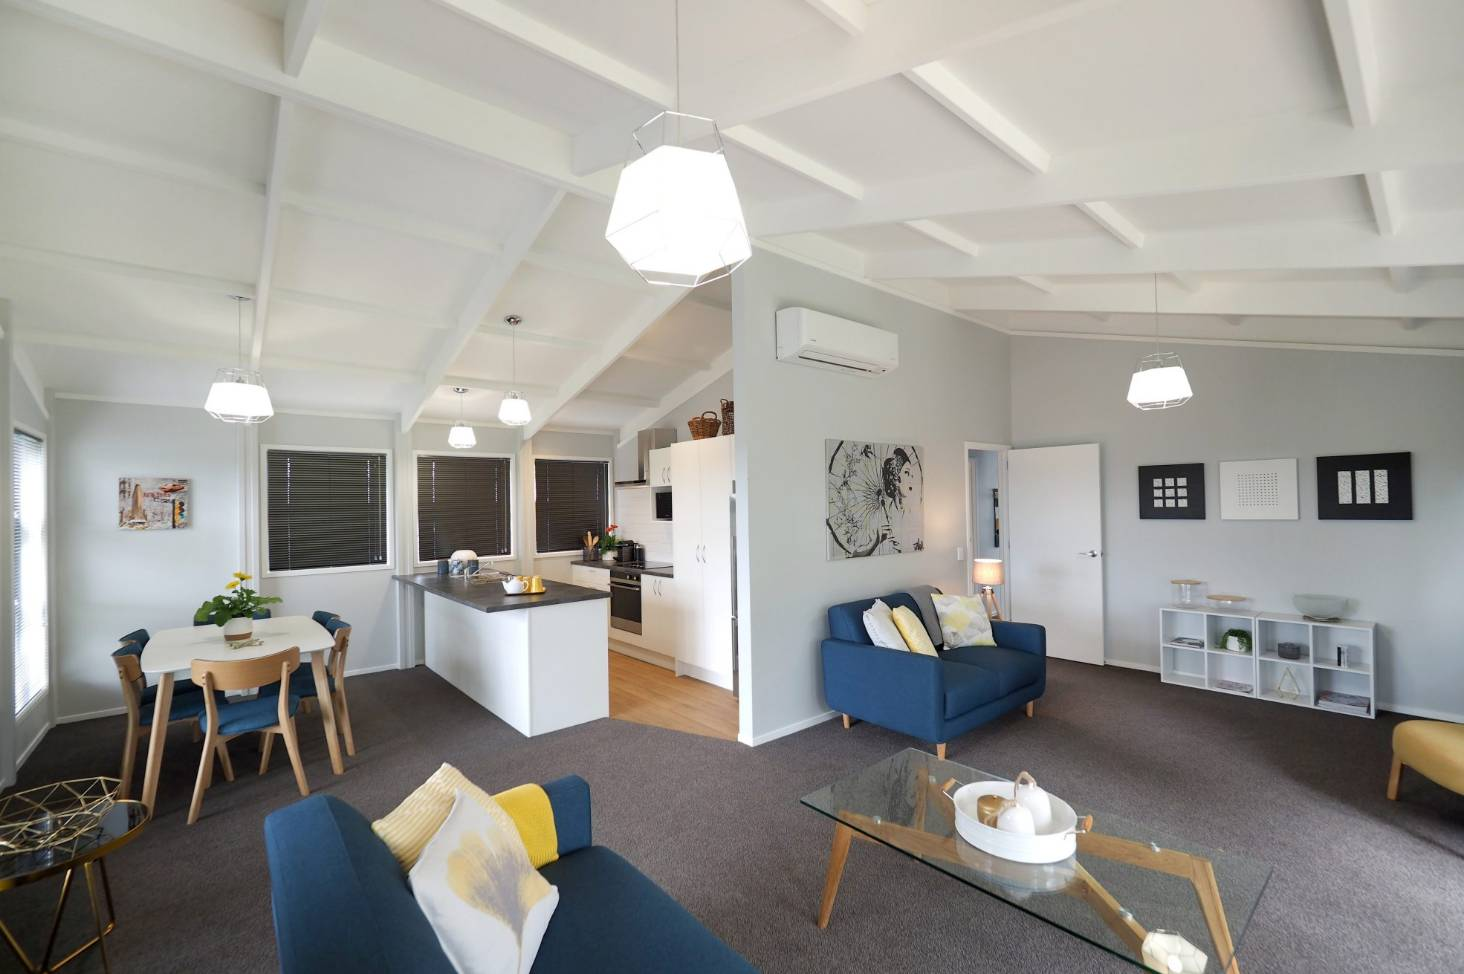 Affordable House Factory Sees Itself As Ikea Of Nz Flat Pack Homes Stuff Co Nz